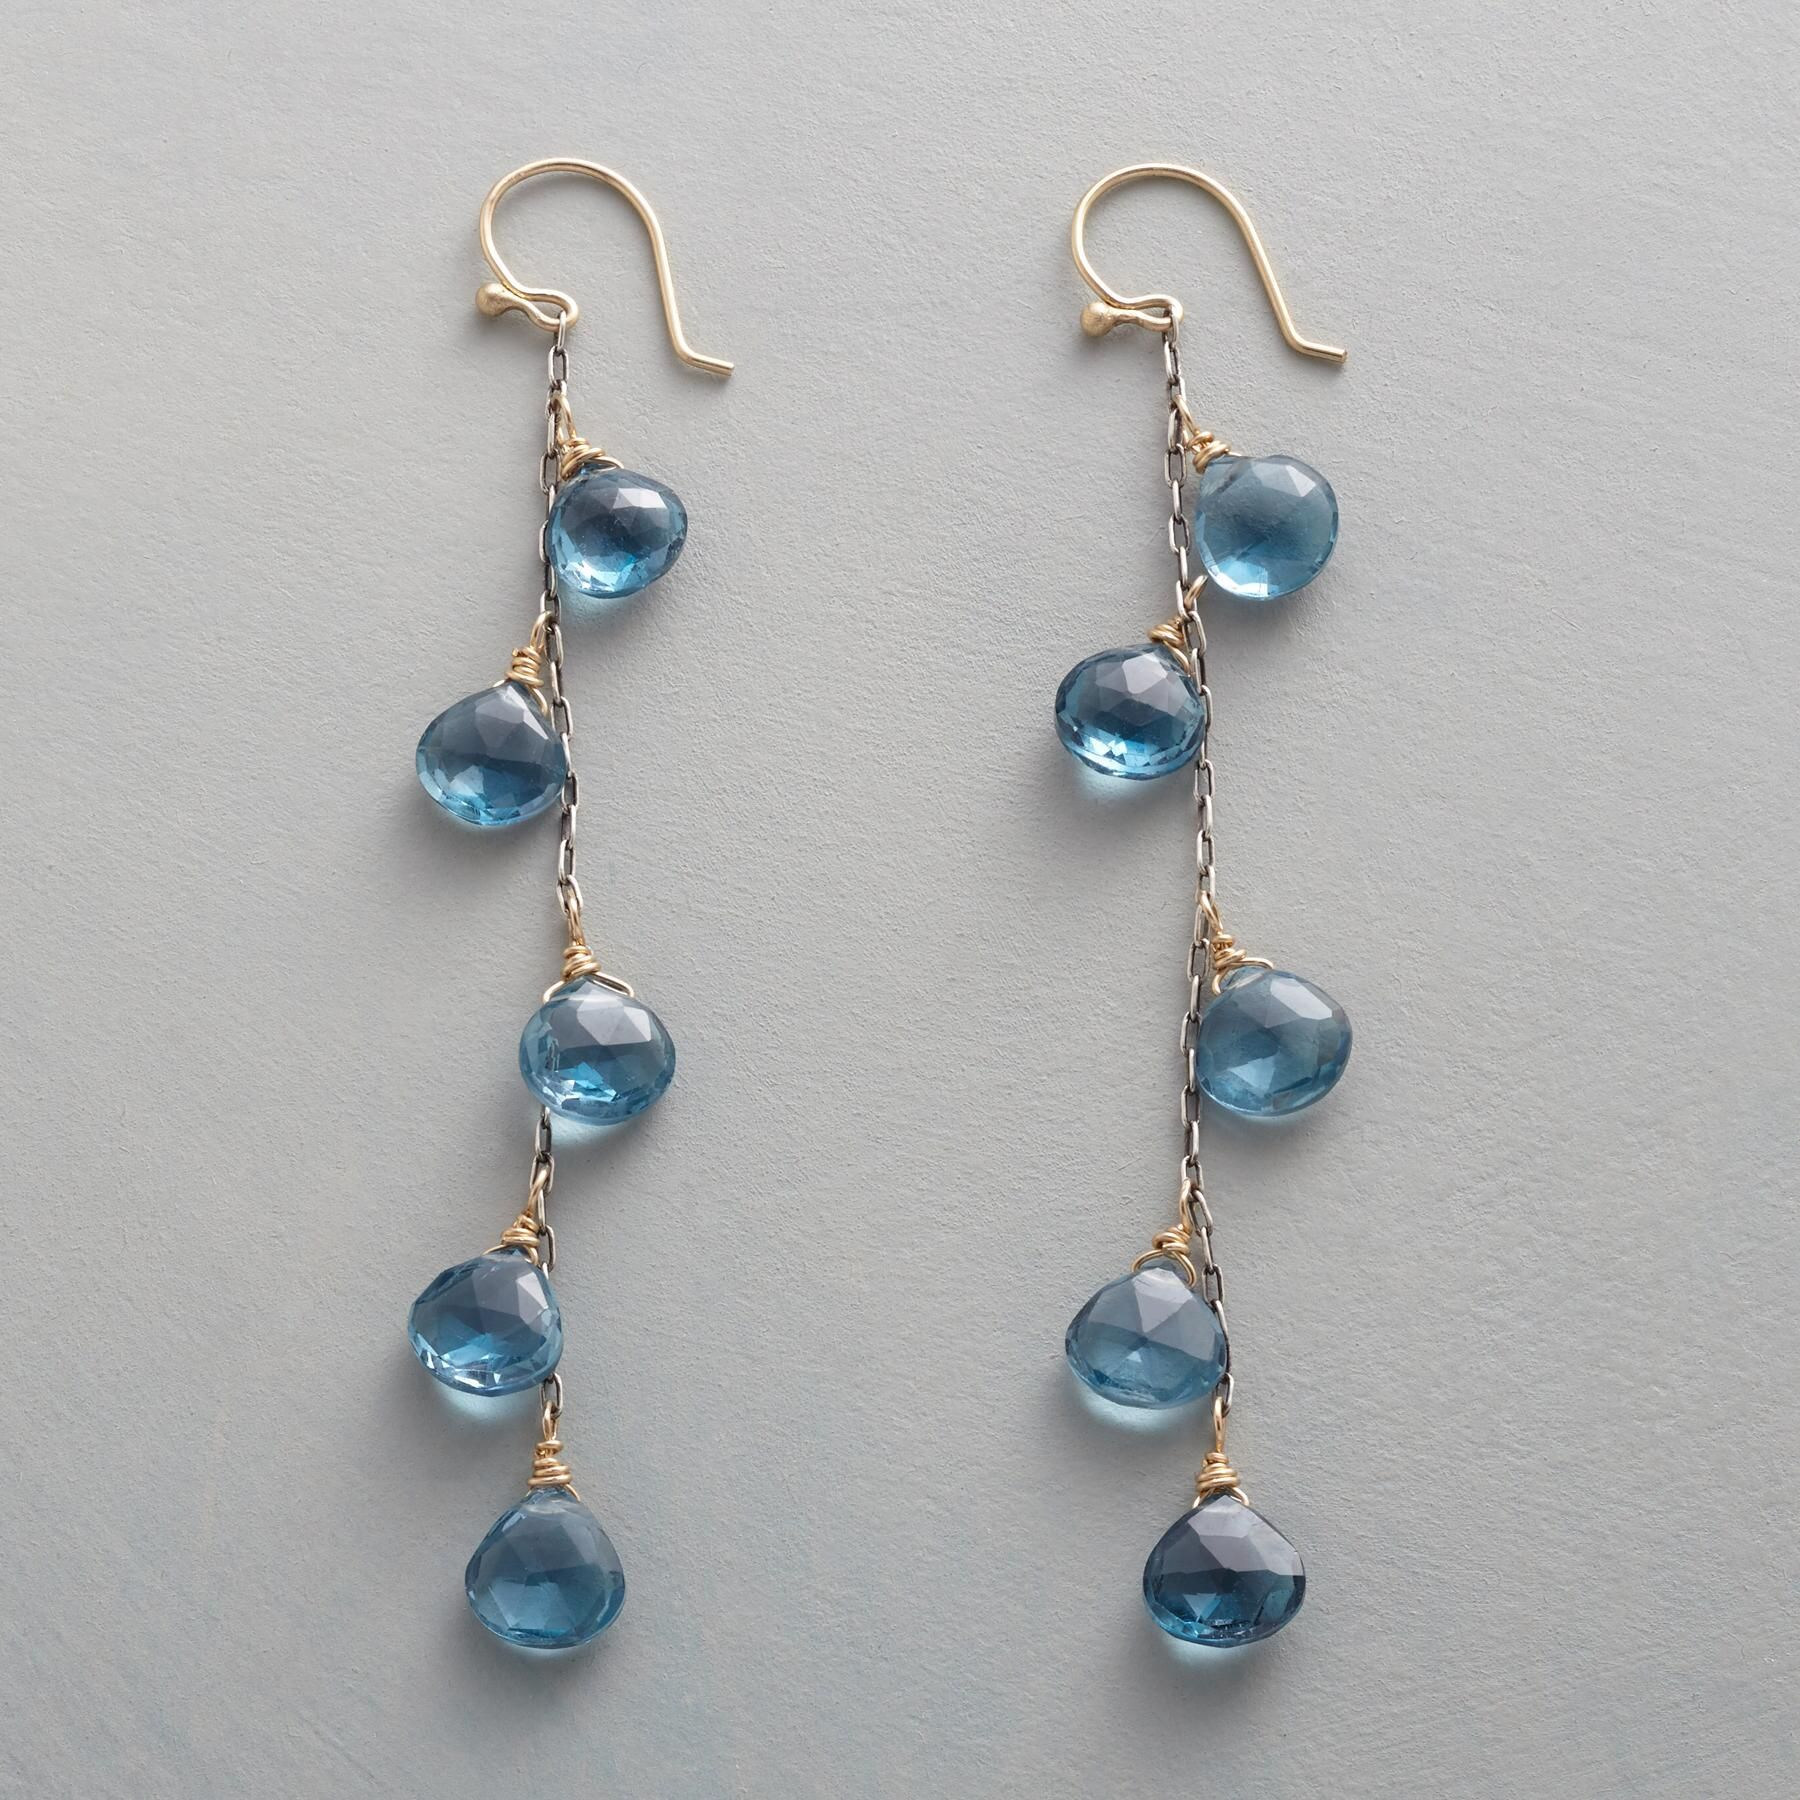 """DROPS OF HEAVEN EARRINGS -- London blue topaz briolettes cascade on oxidized sterling silver chains. 10kt gold wires. By Rebecca Lankford. USA. 2-1/2""""L."""